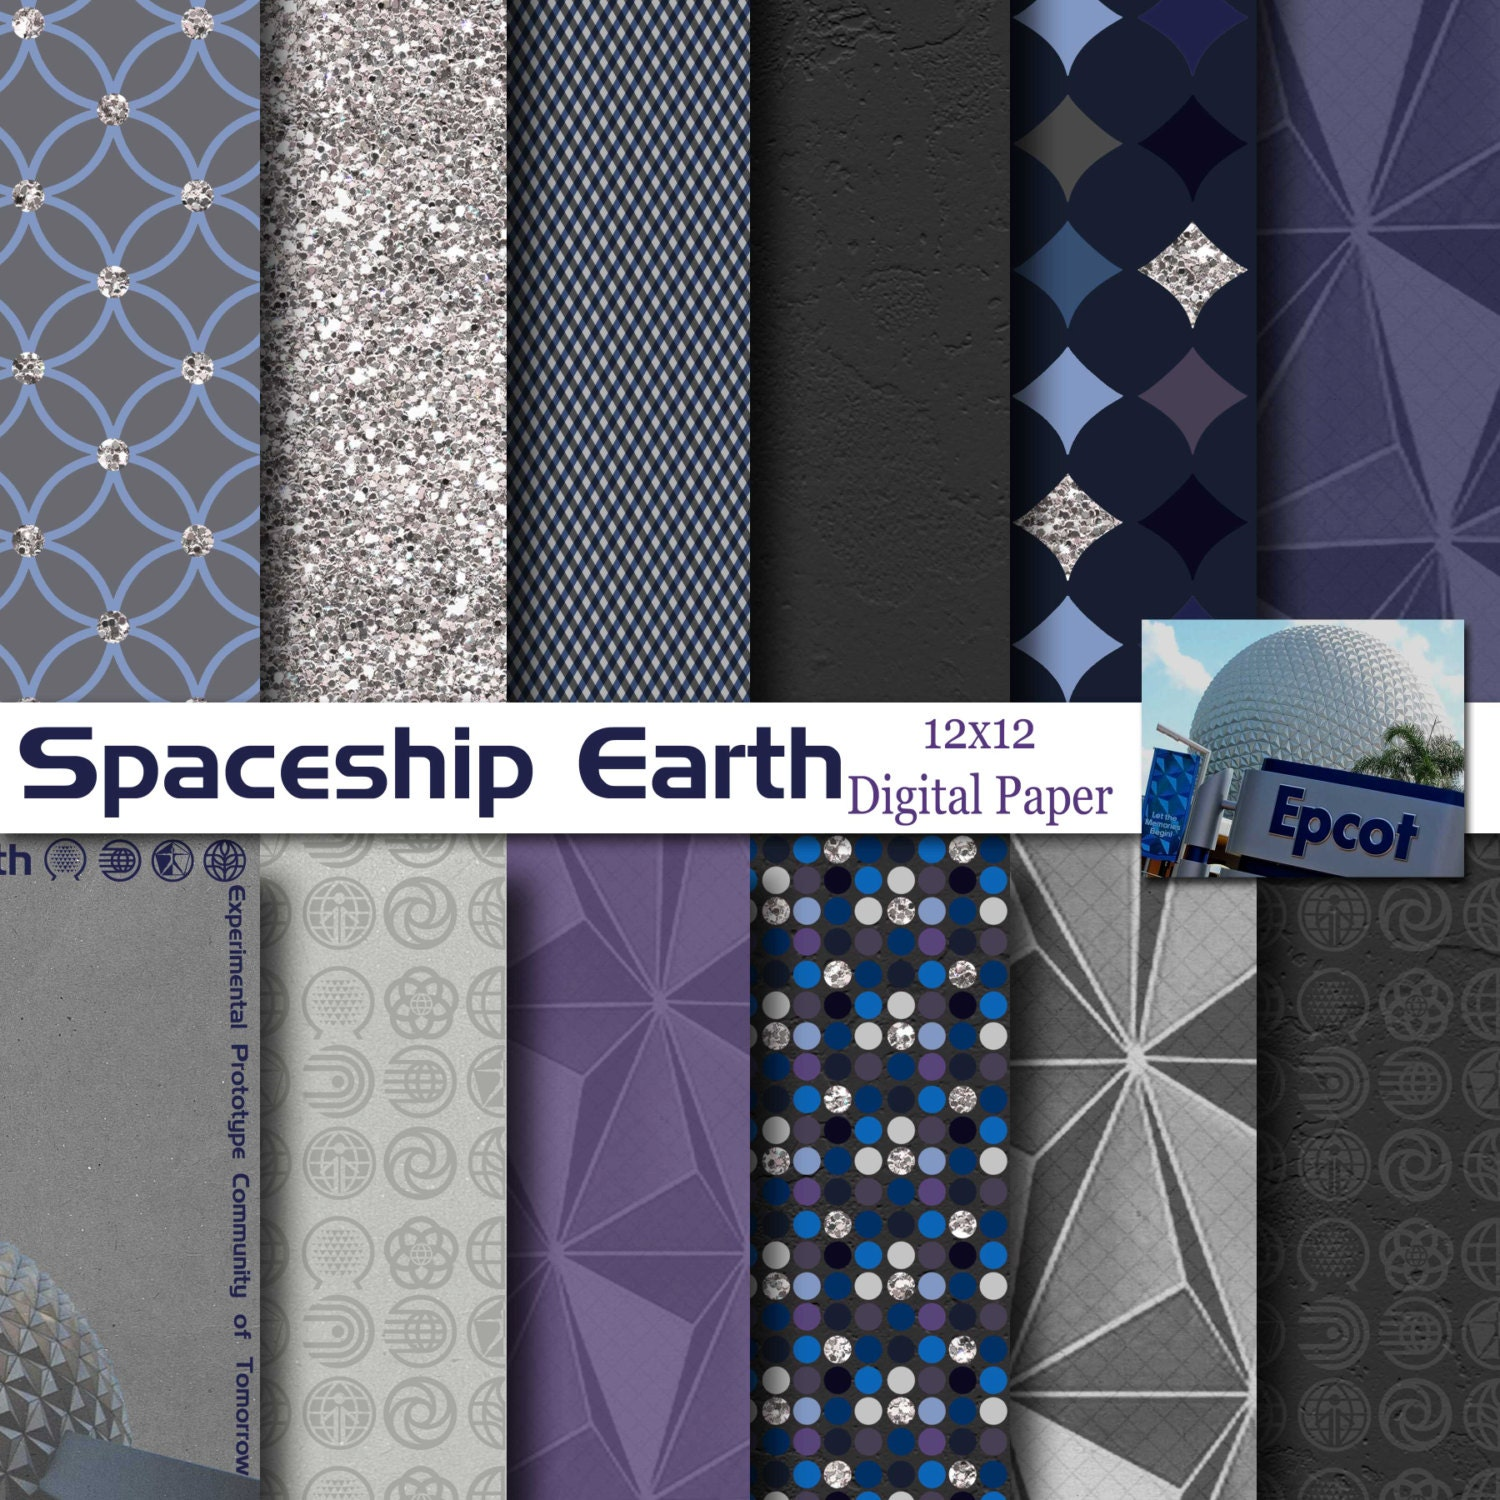 Disney epcot spaceship earth inspired 12x12 digital paper for Spaceship fabric